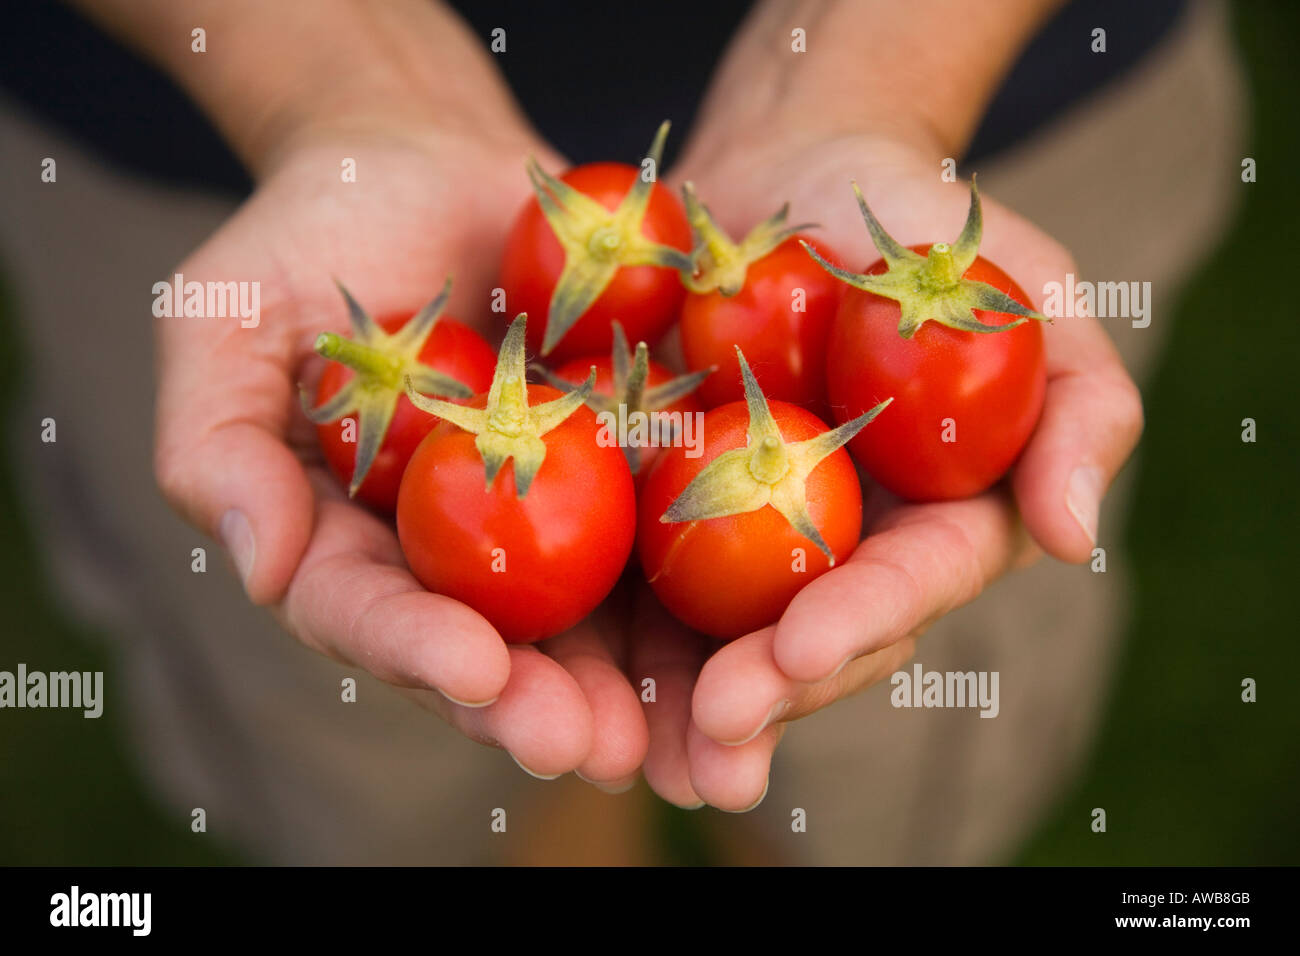 Women's hands holding tomatoes - Stock Image